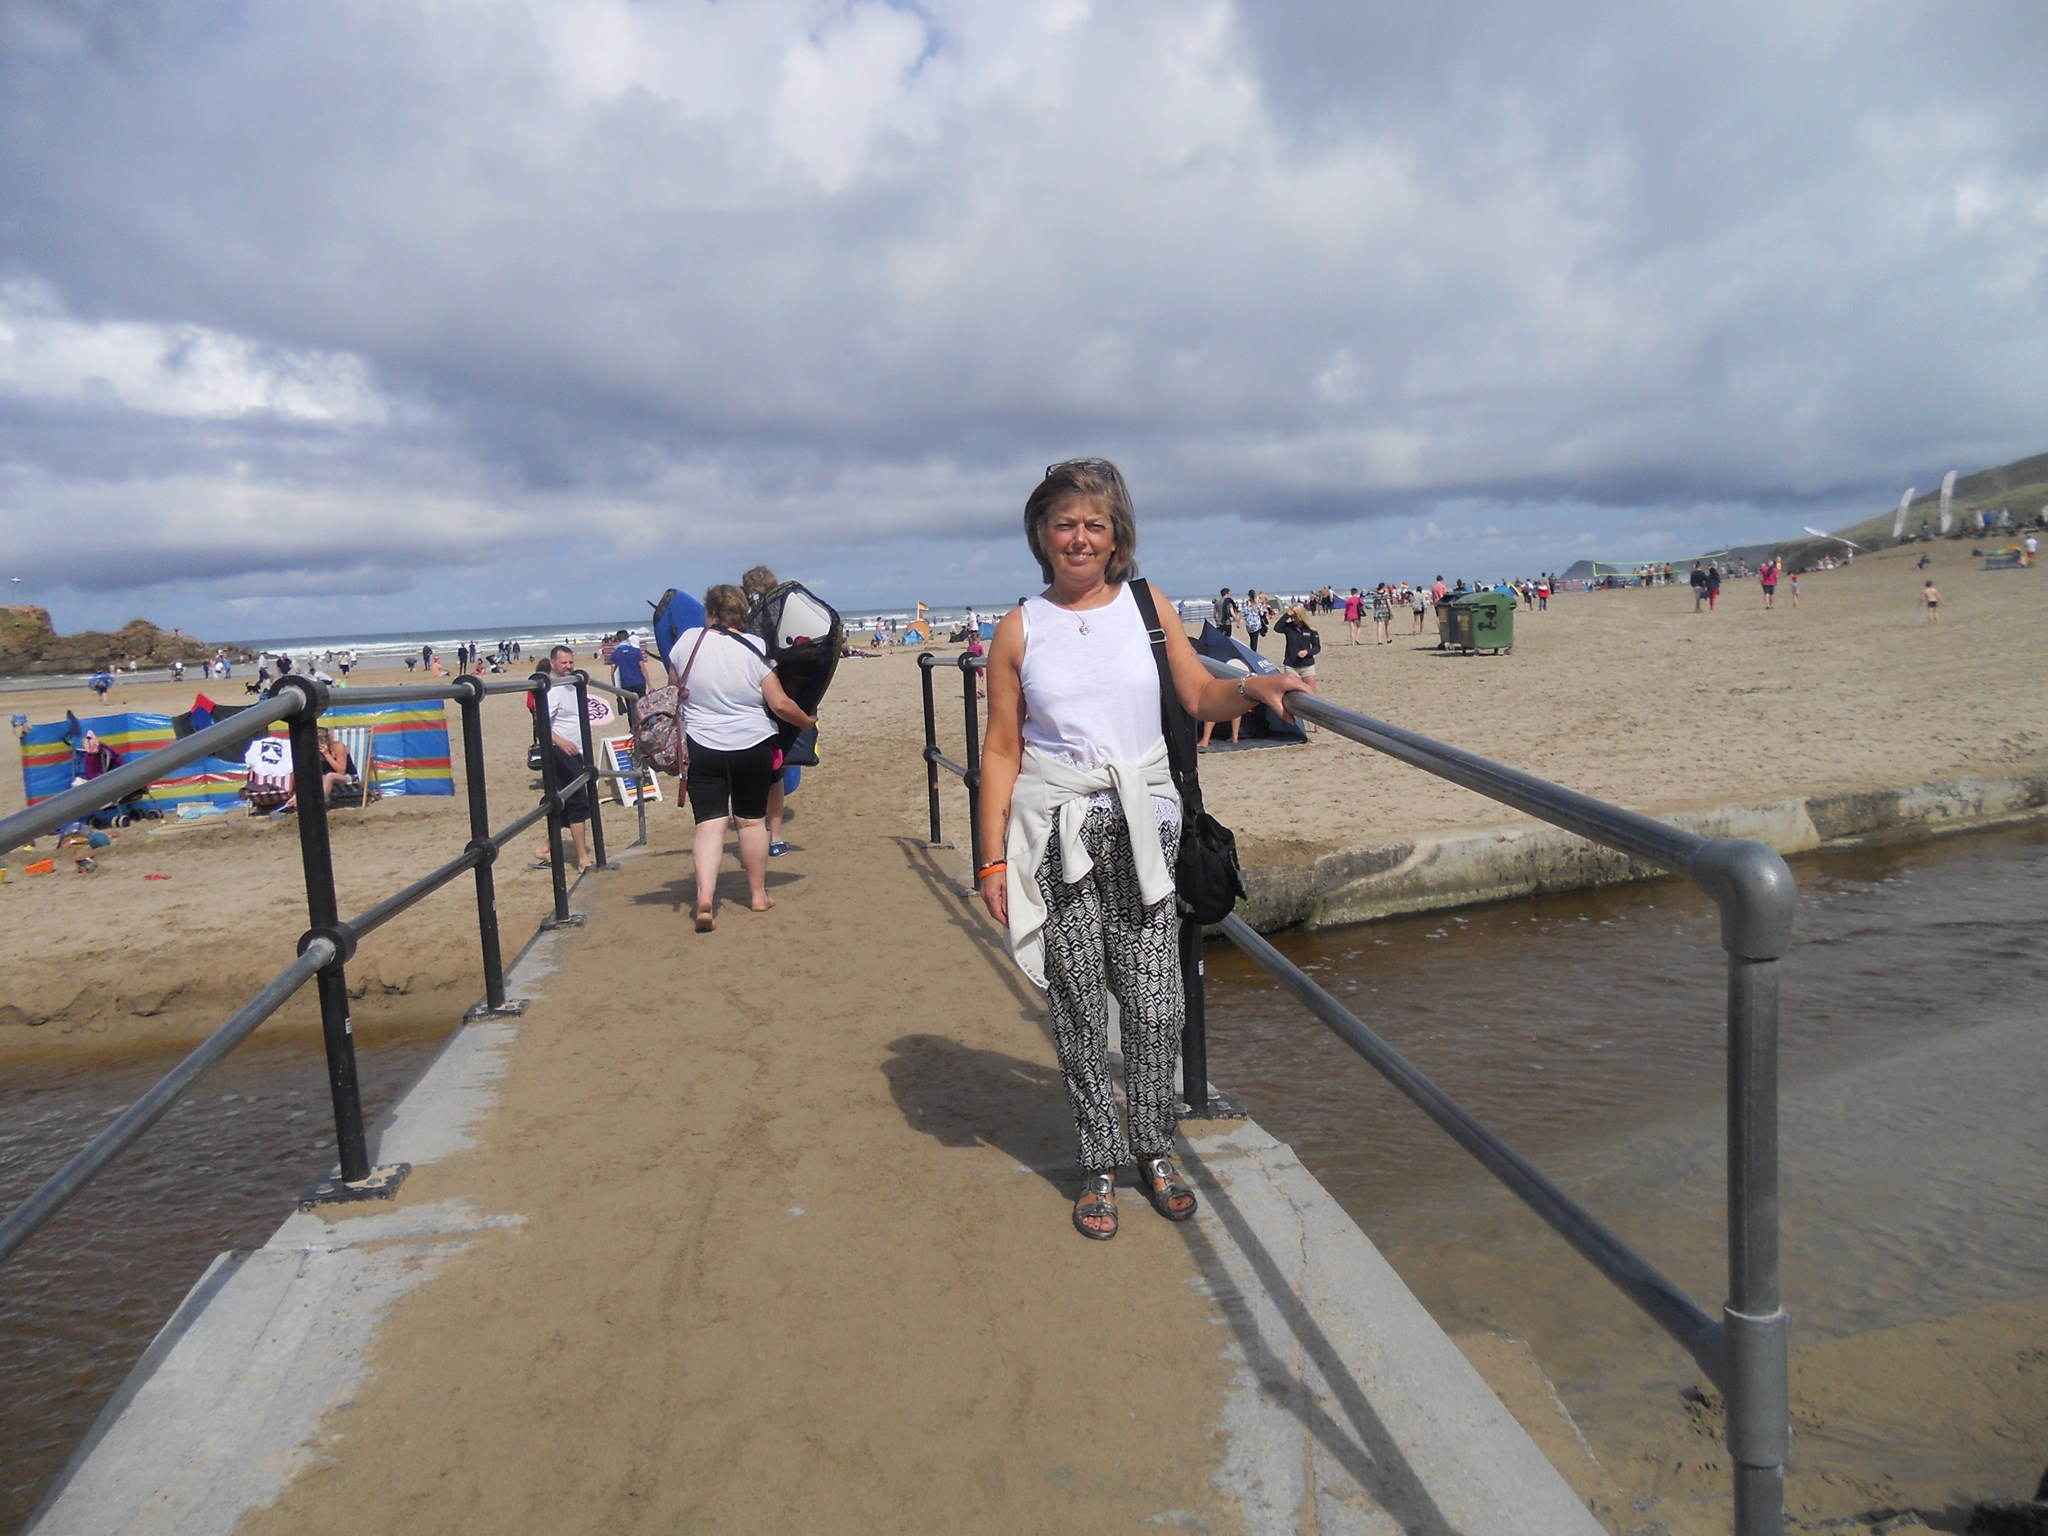 Mum crossing the bridge from the hotel to the beach